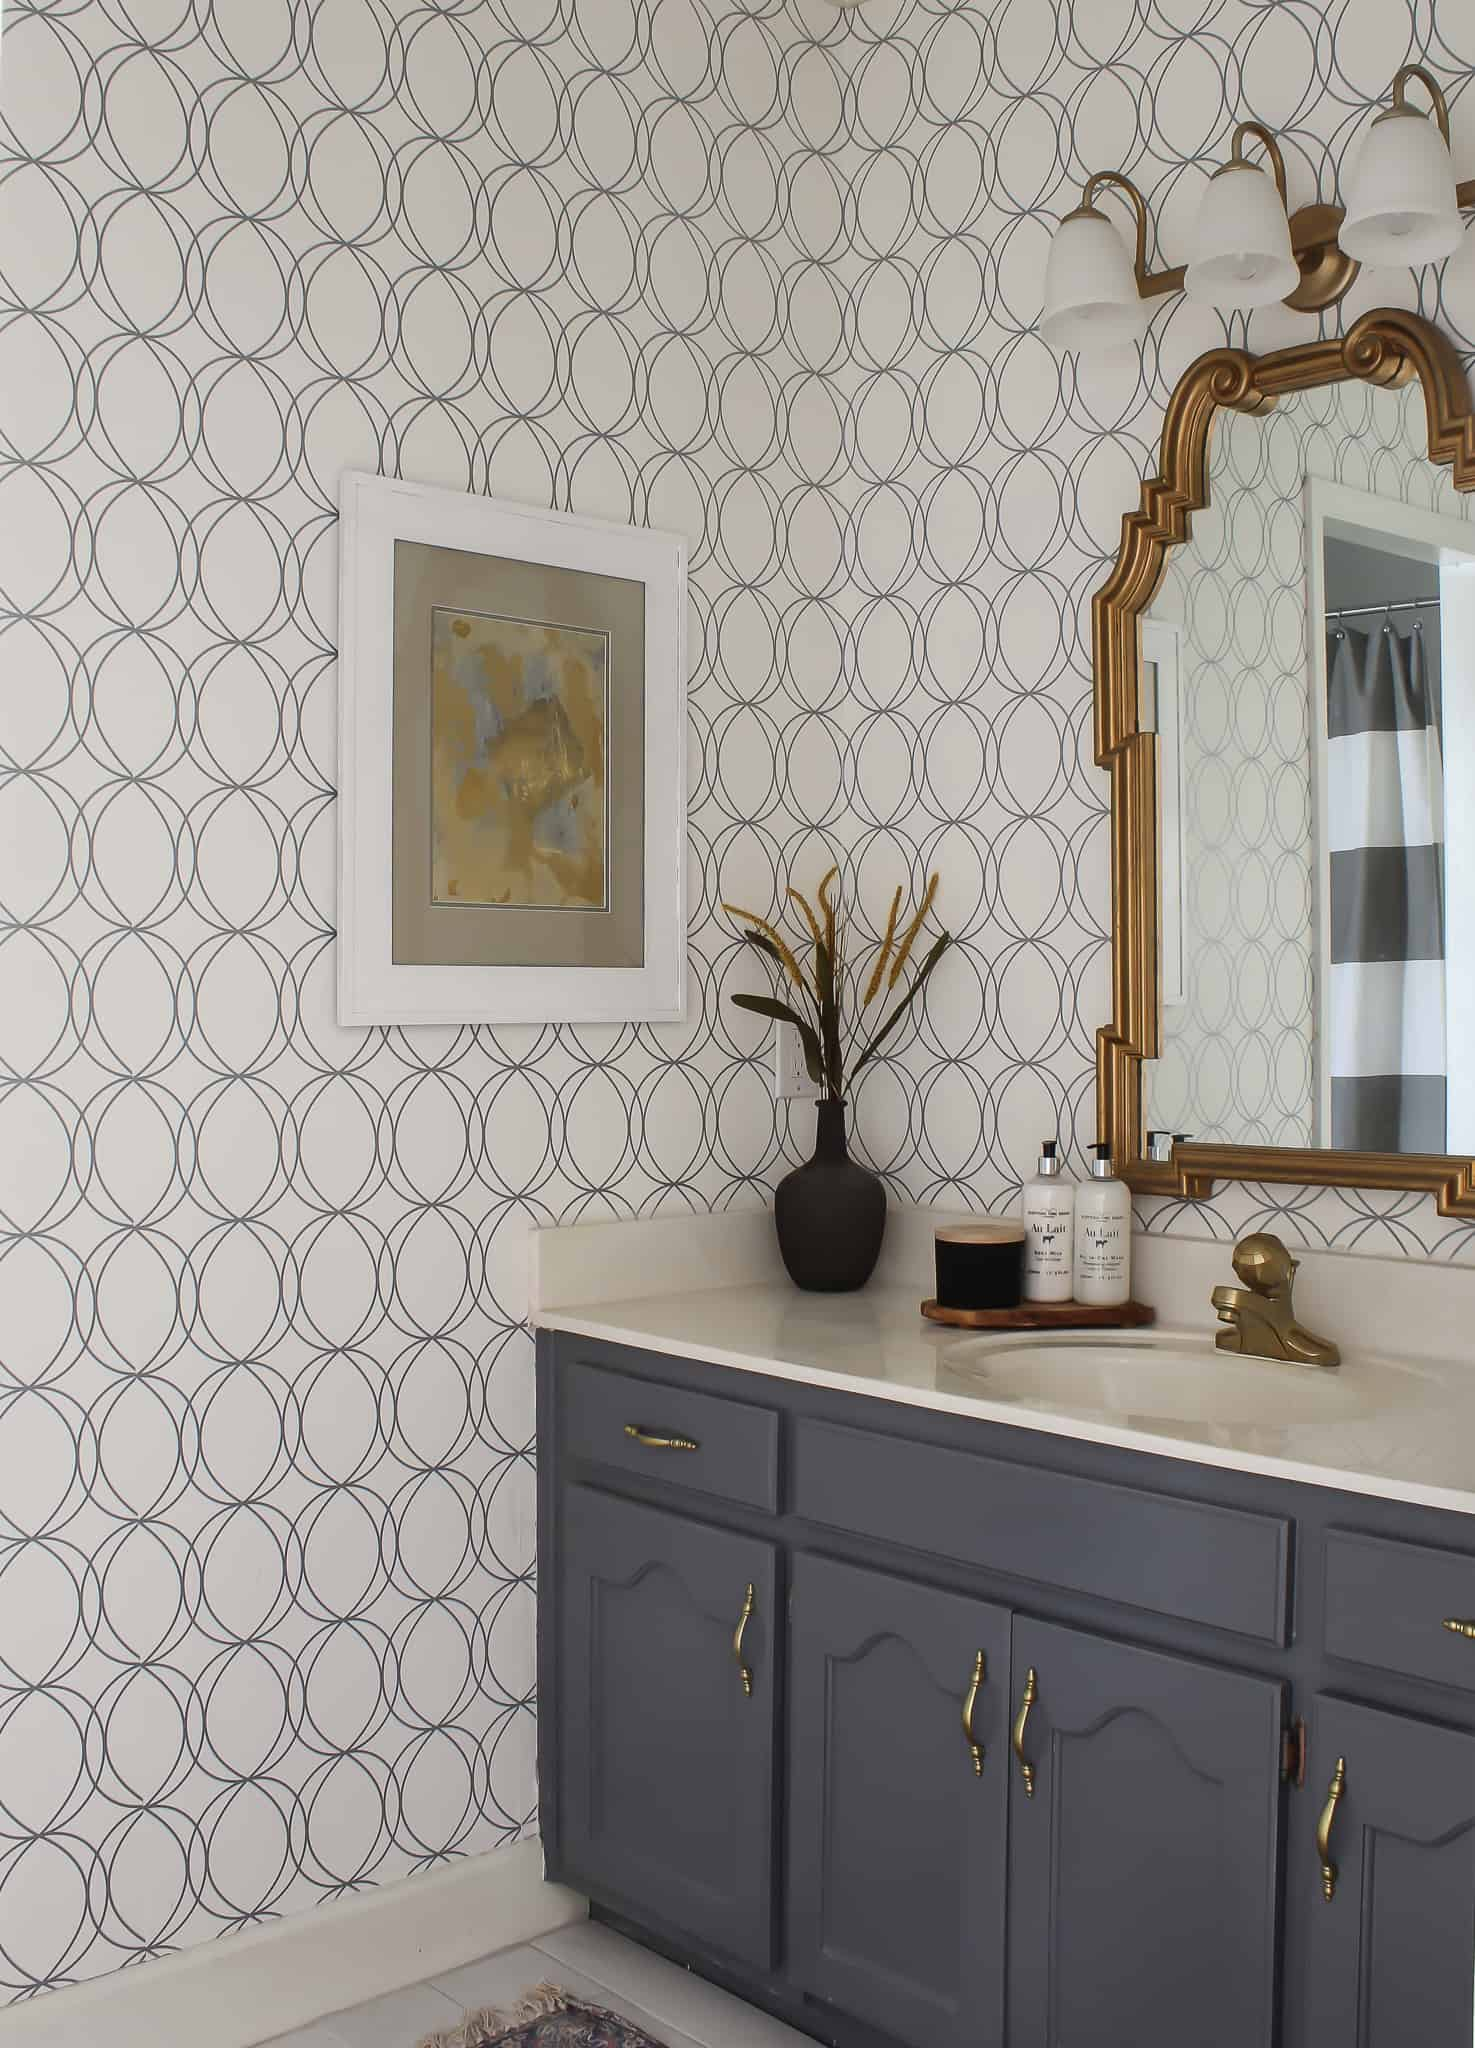 Bathroom Makeover for under $100.